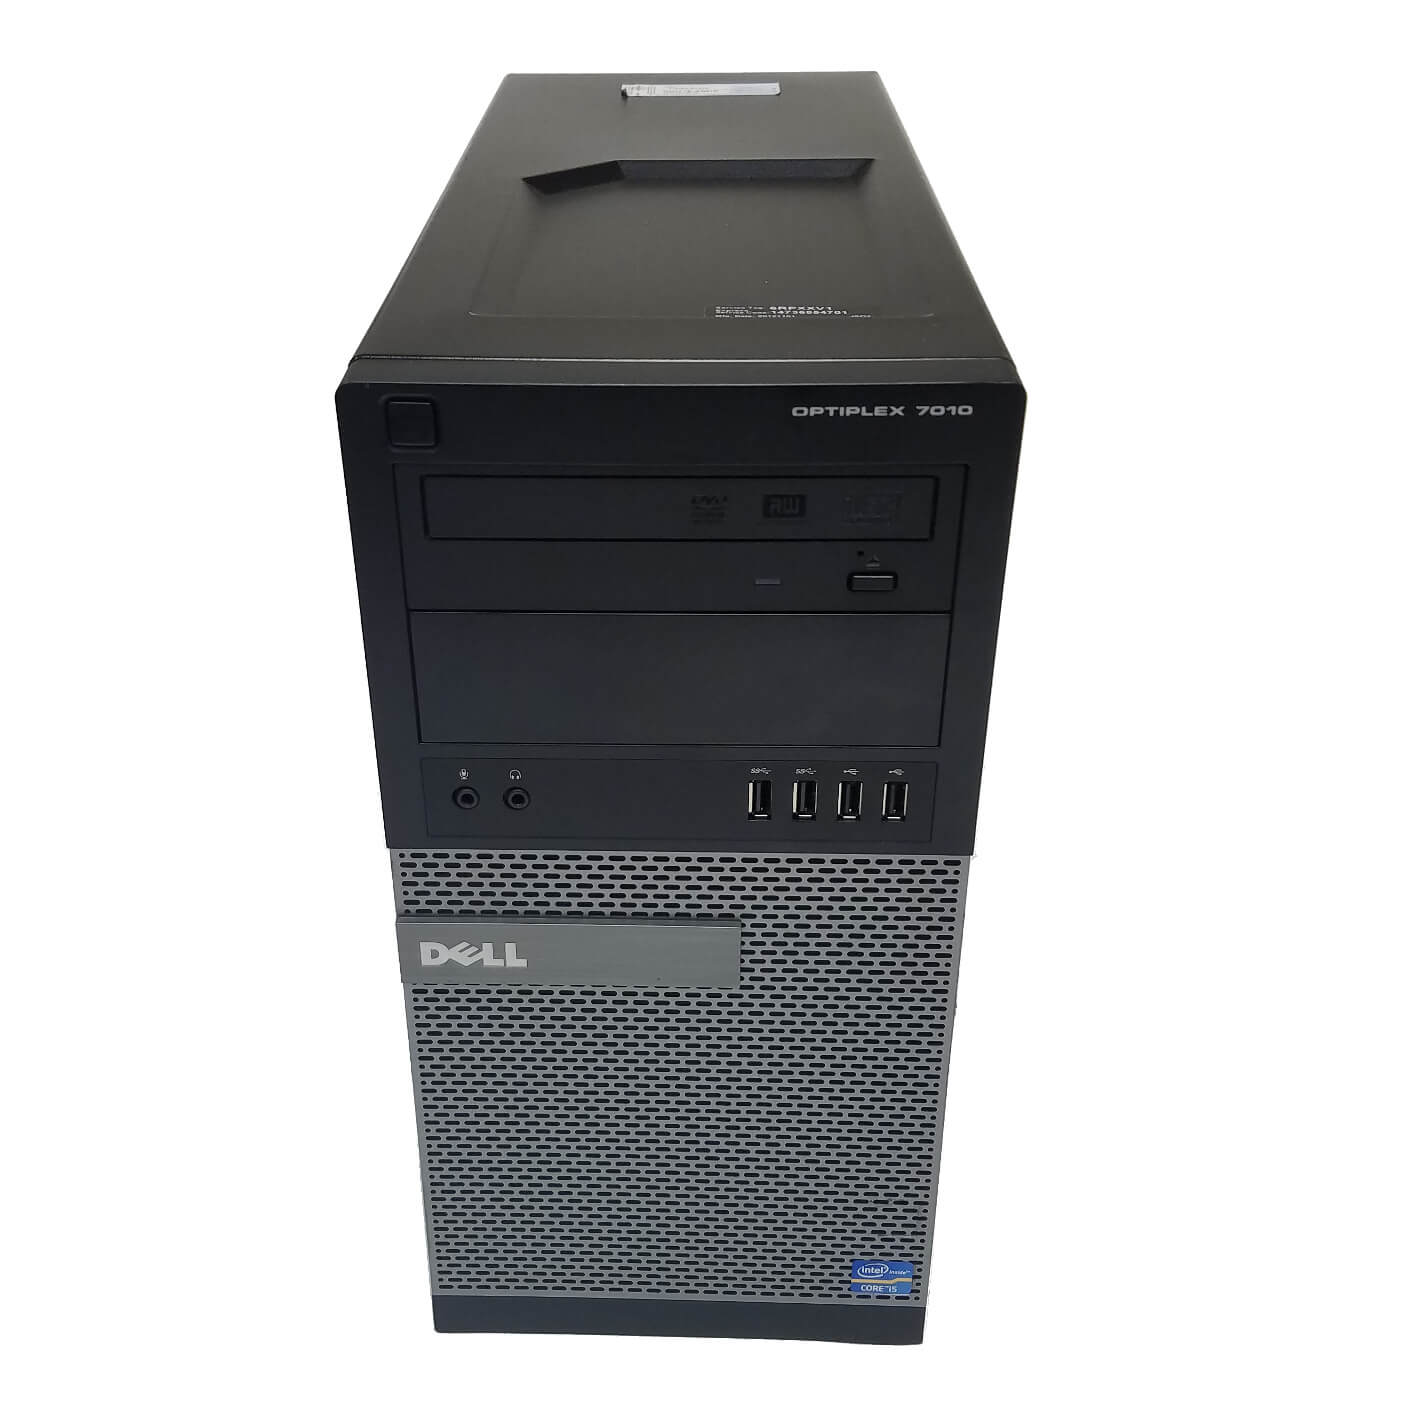 DELL 7010 TOWER I5-3470 3.2 / 4096 MB DDR3 / 120 GB SSD NOWY + 500 GB / WINDOWS 10 PRO